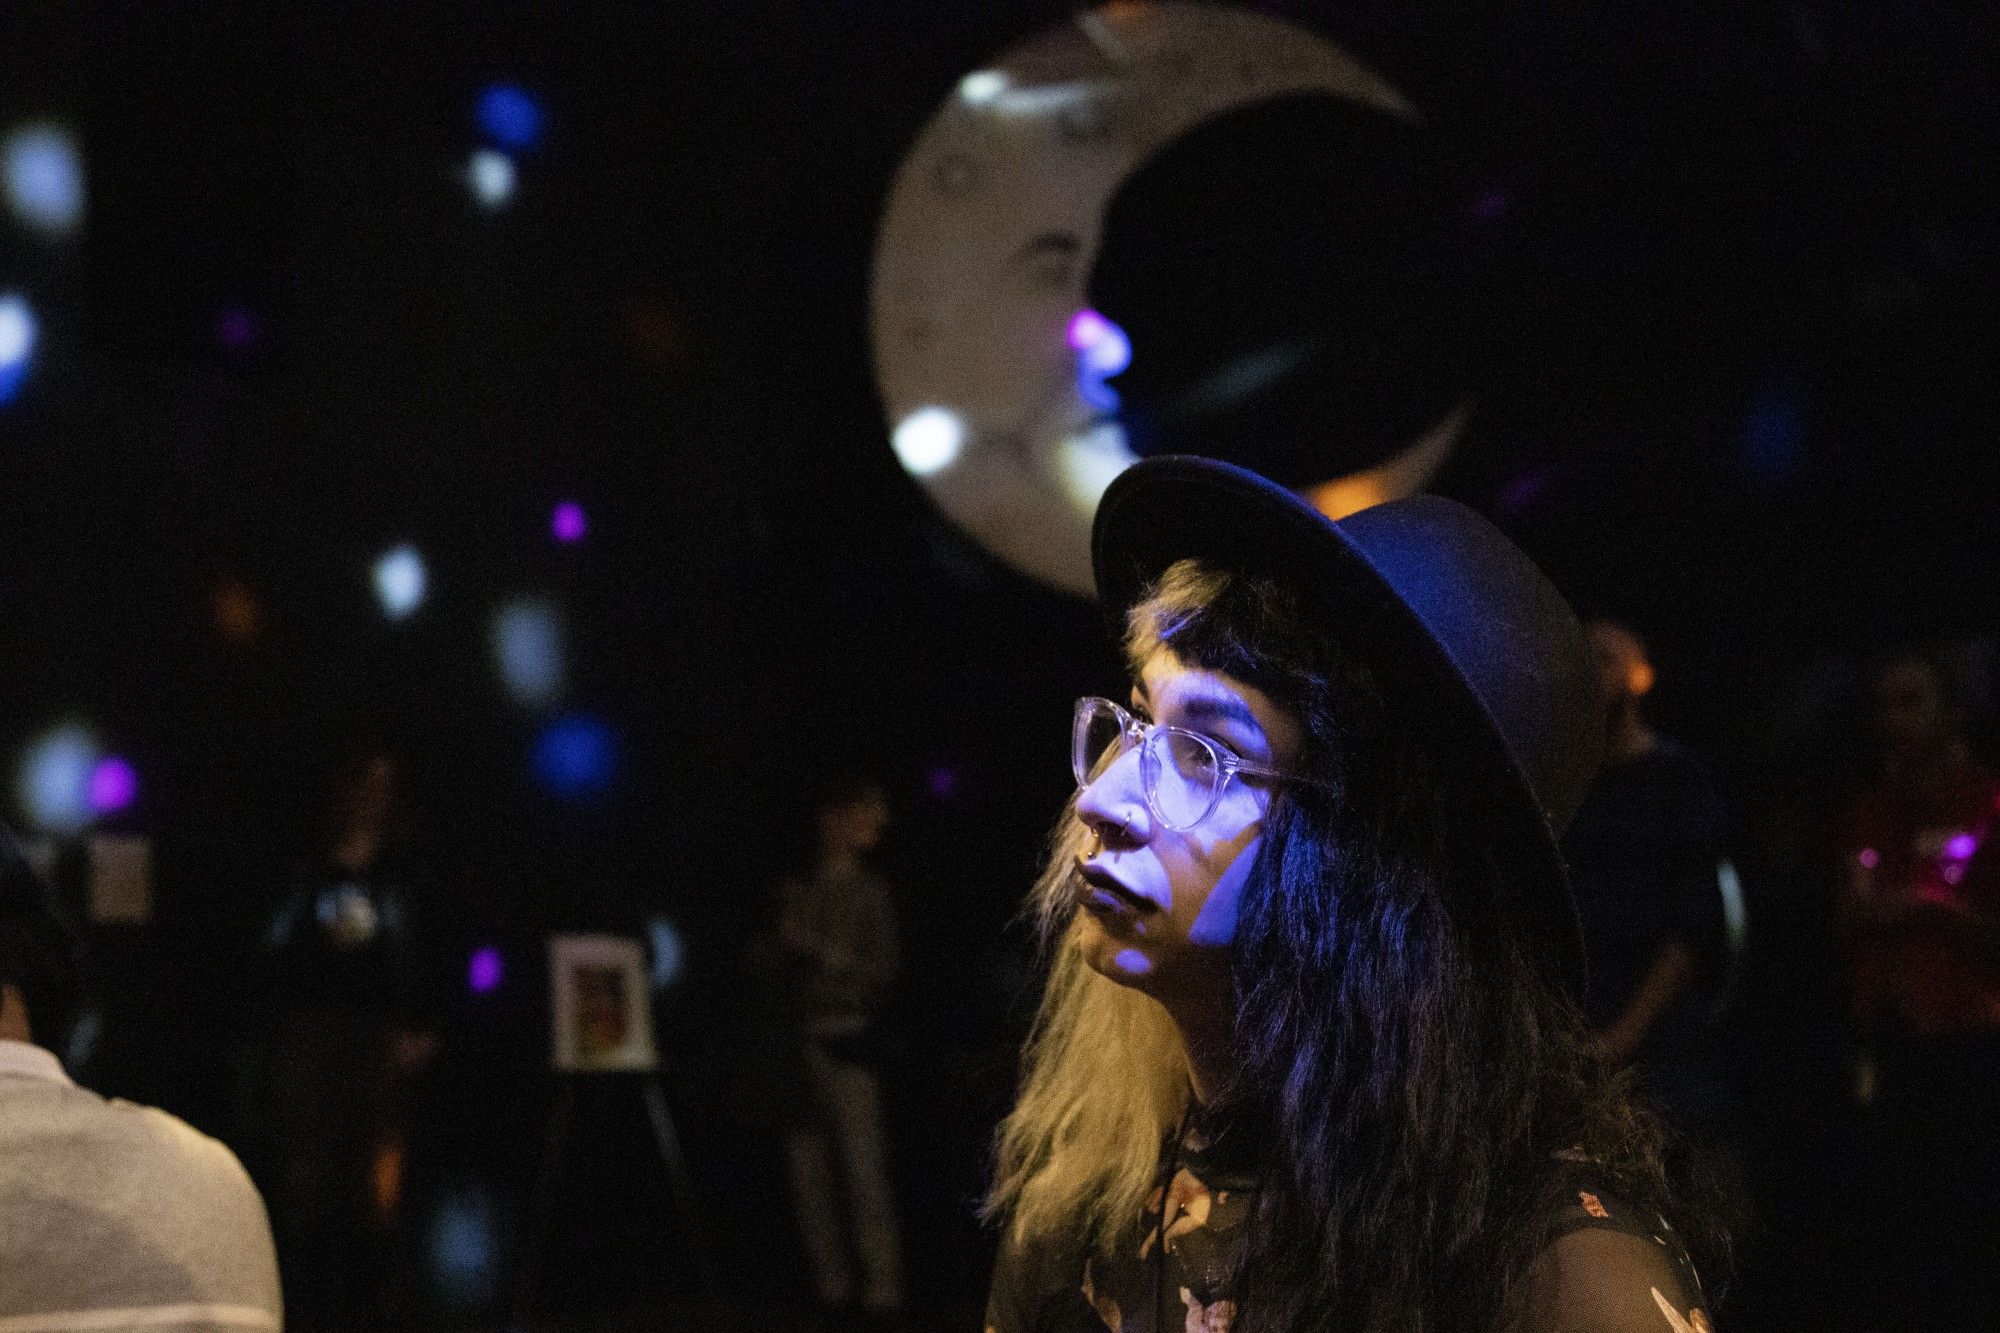 Rose Hein watches a performance at Malleable, an art exhibition by and for trans women and trans femme artists, in Minneapolis on Thursday, Nov. 7.